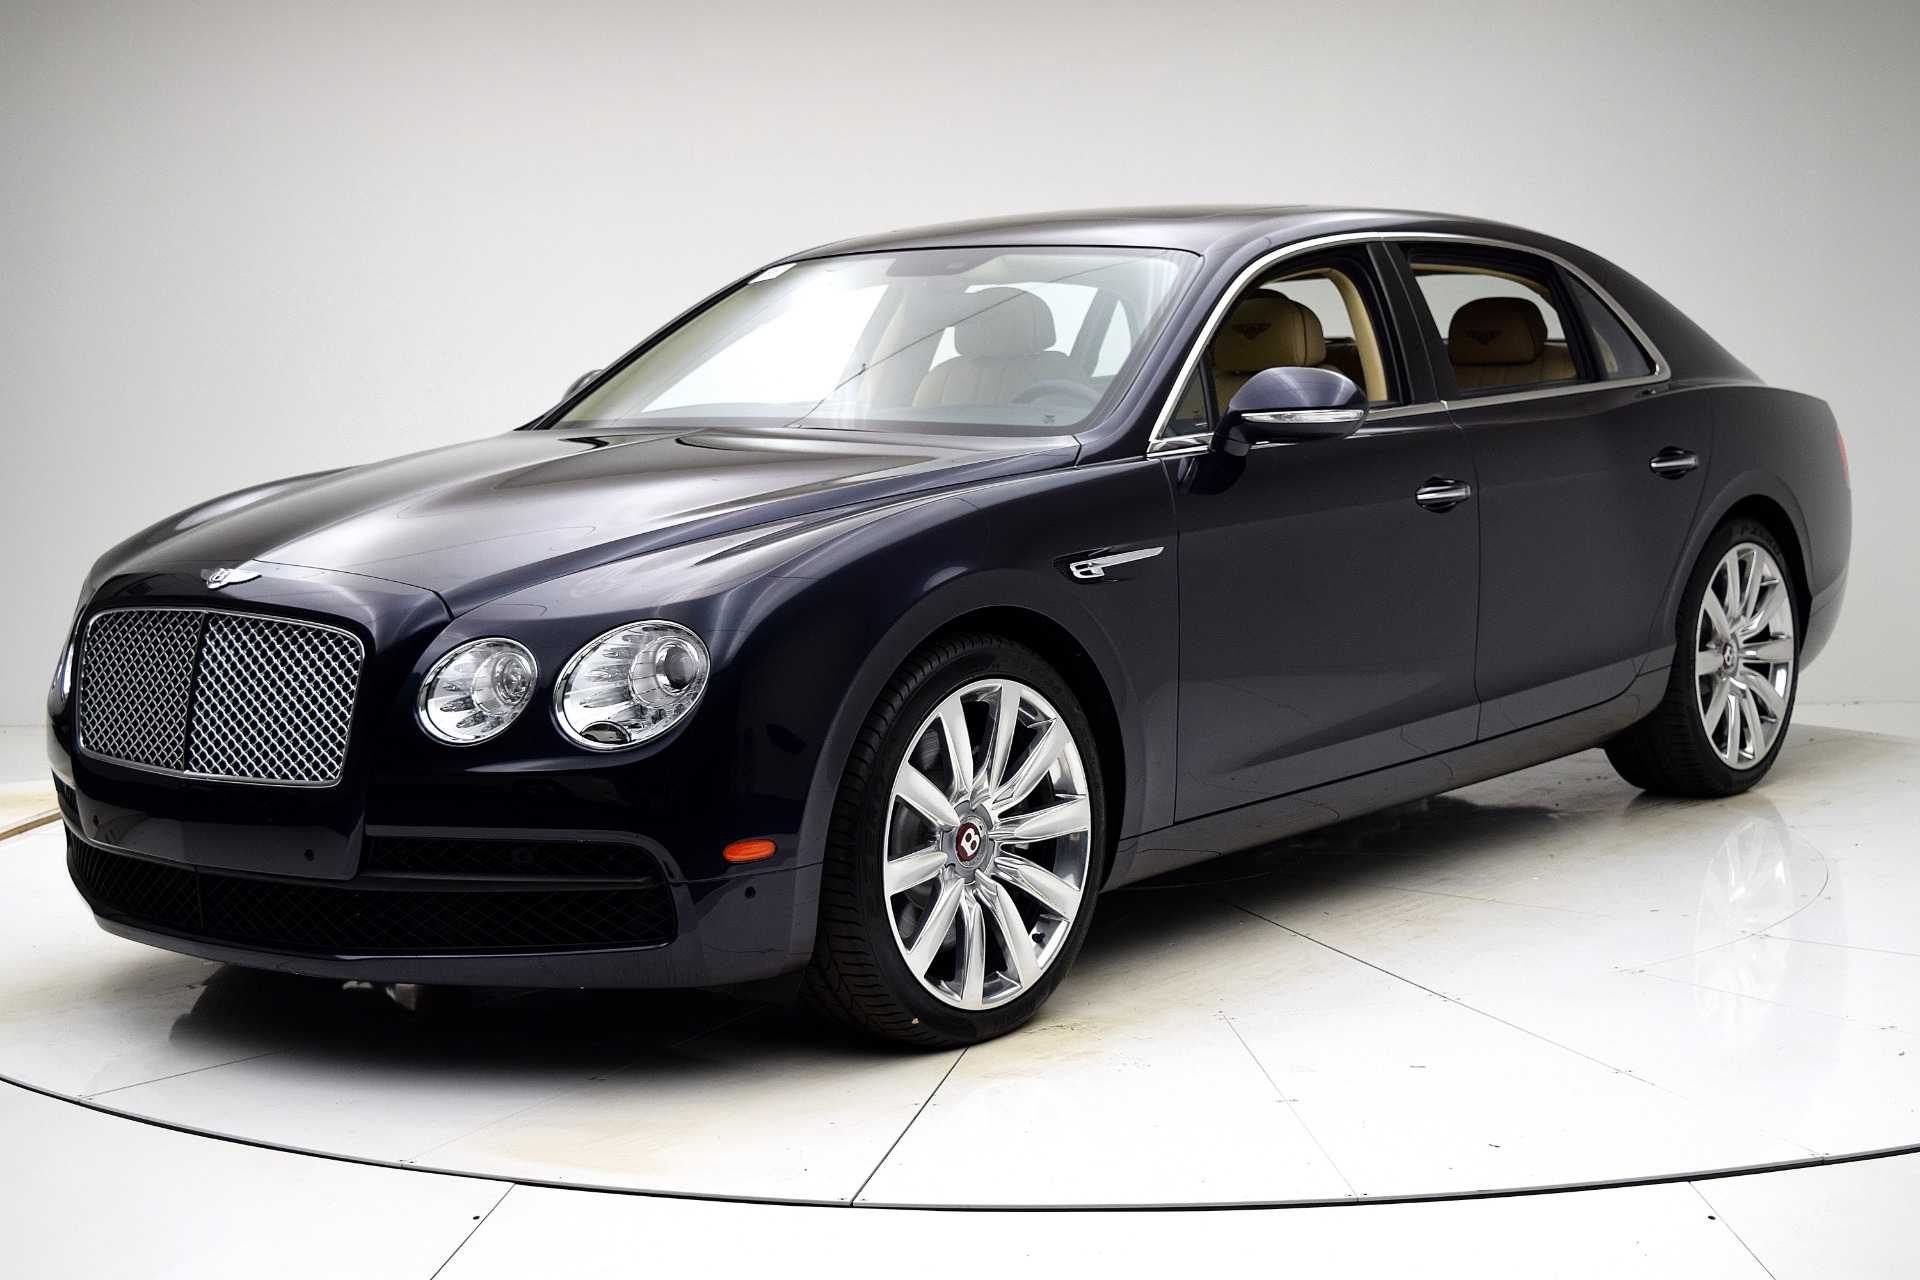 Used 2016 Bentley Flying Spur V8 for sale Sold at F.C. Kerbeck Aston Martin in Palmyra NJ 08065 2